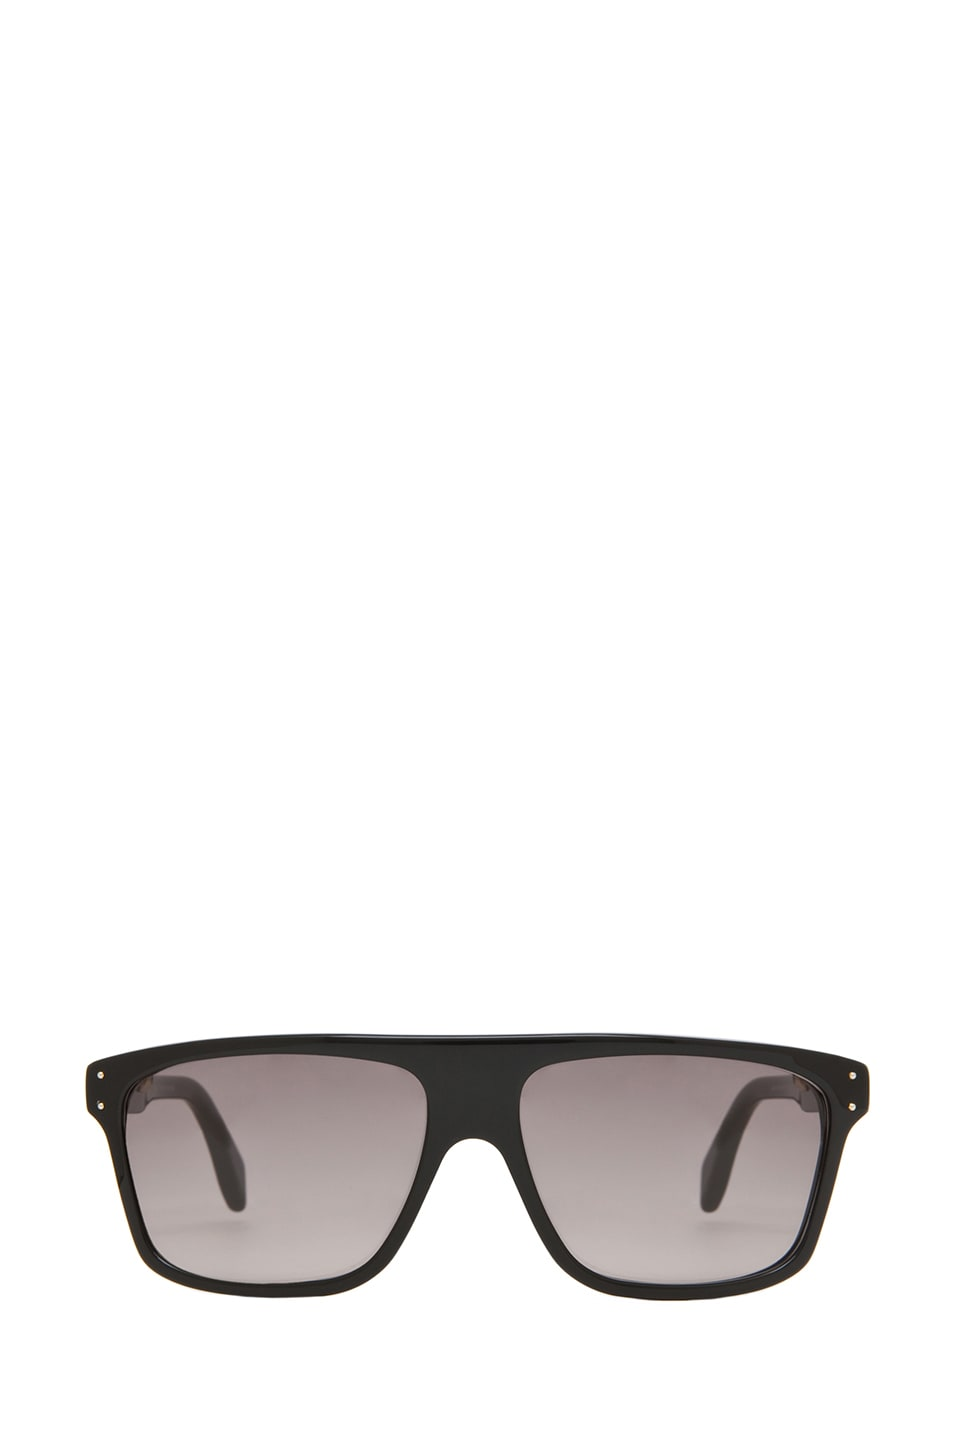 Image 1 of Alexander McQueen 4209 Sunglasses in Black & Gray Gradient